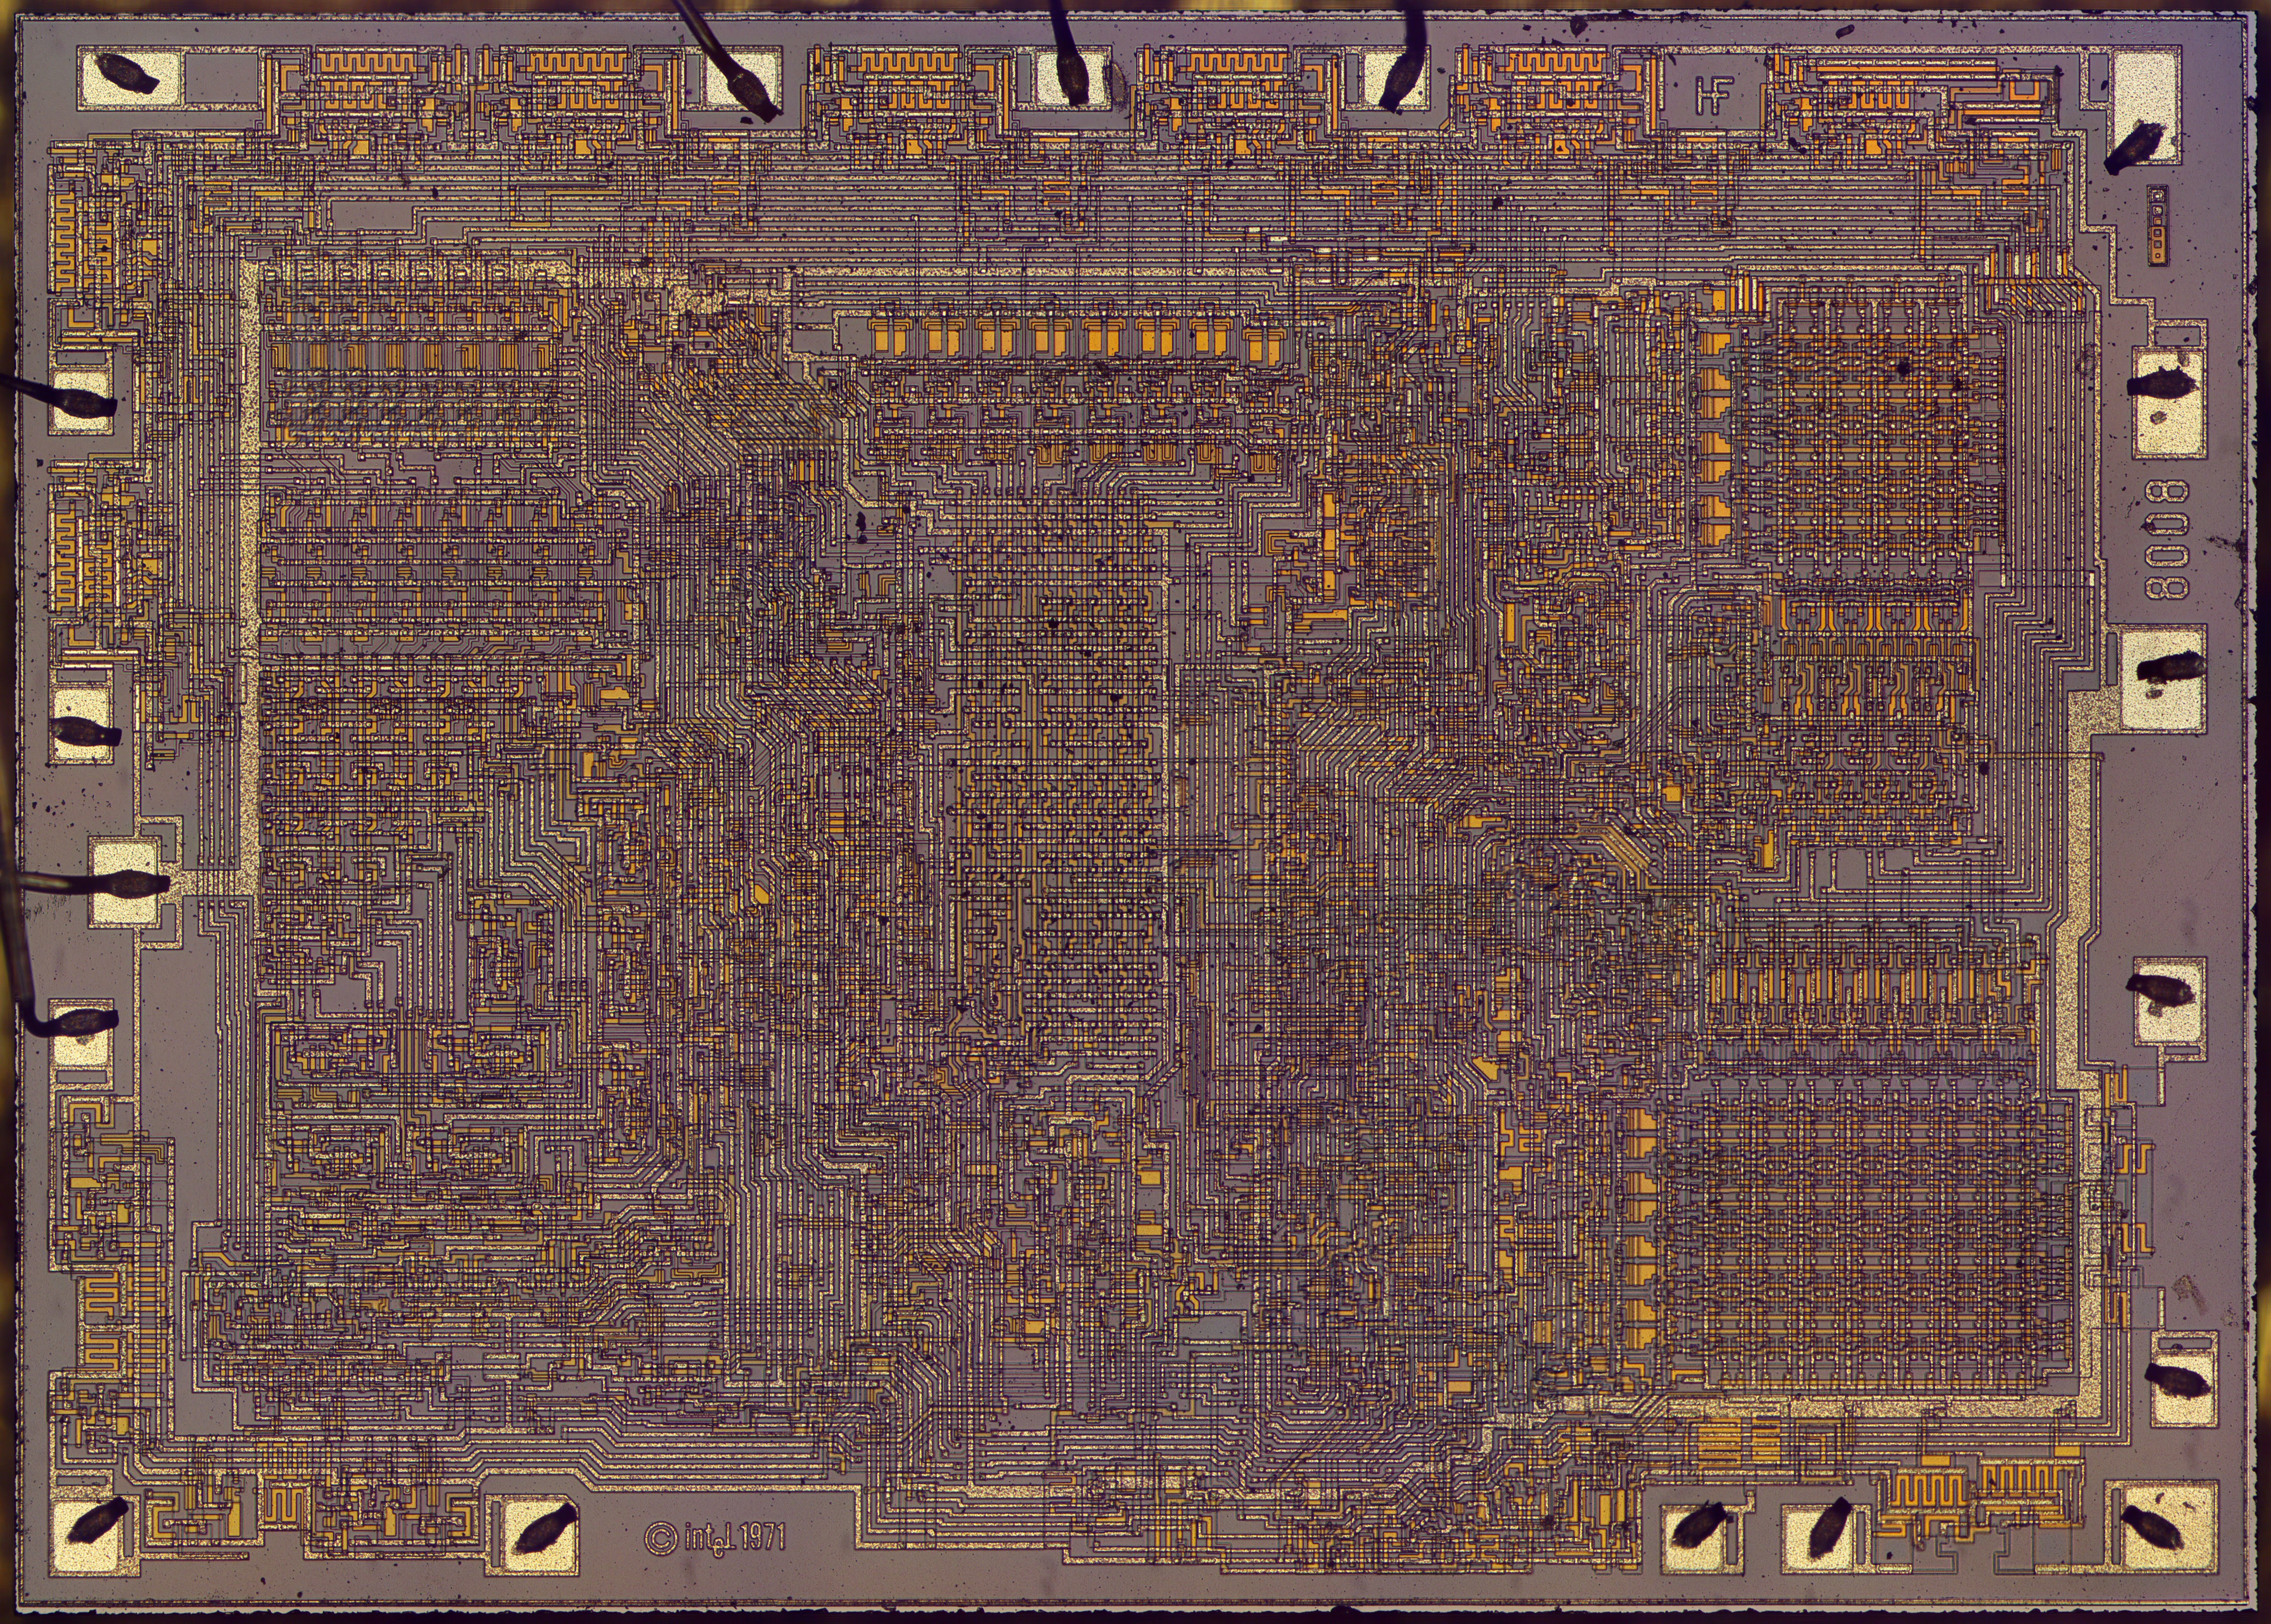 Die Photos And Analysis Of The Revolutionary 8008 Microprocessor 45 Smallscale Integrated Circuit With Bond Wires Attached In Photograph